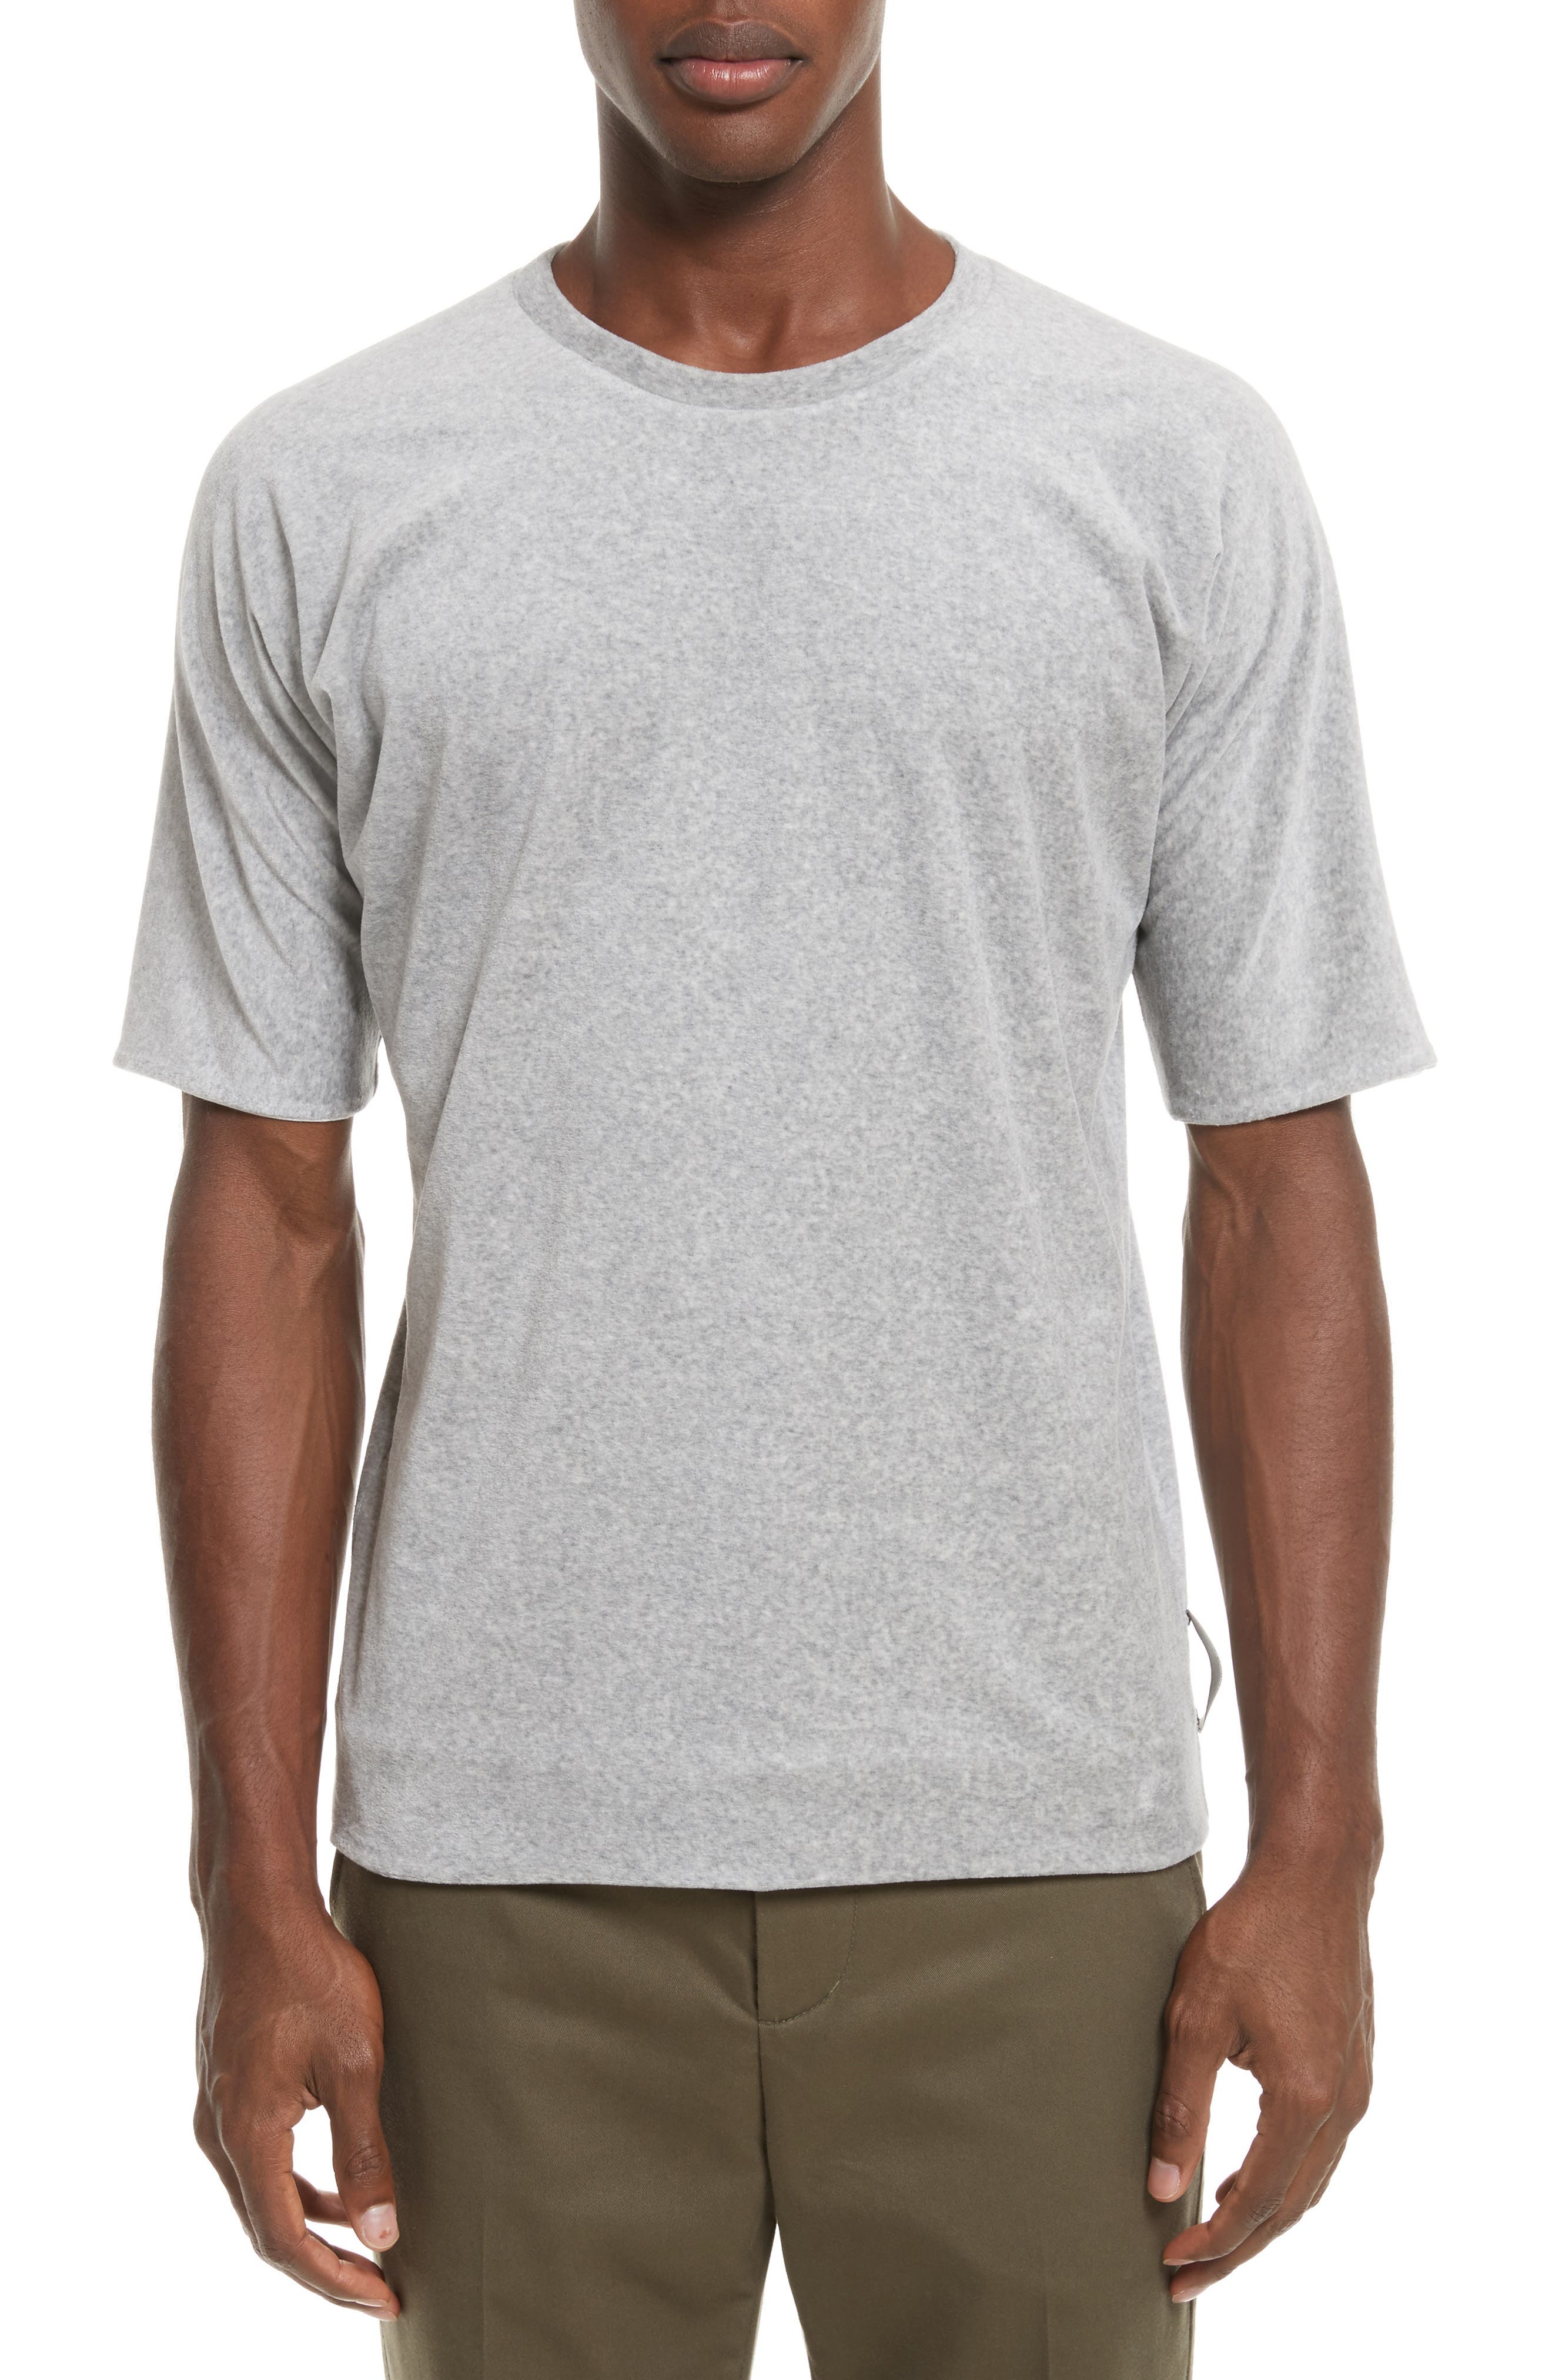 Alternate Image 1 Selected - 3.1 Phillip Lim Reversible Double Layer T-Shirt